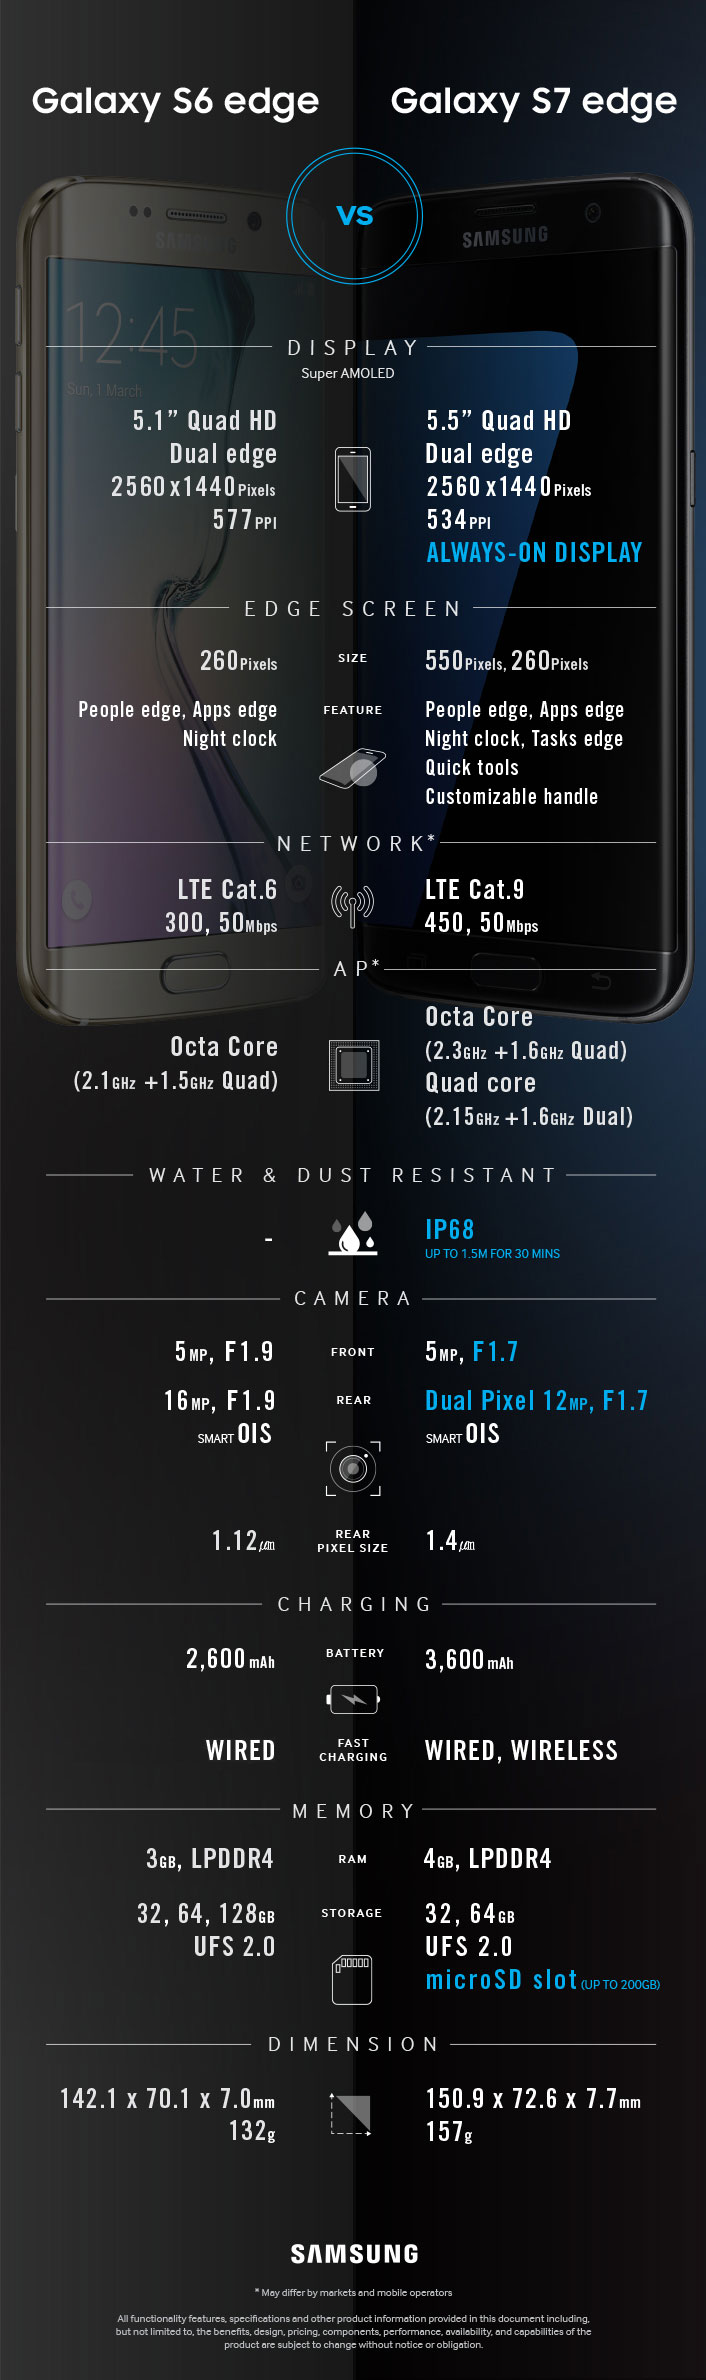 Infografía Galaxy S7 edge vs Galaxy S6 edge